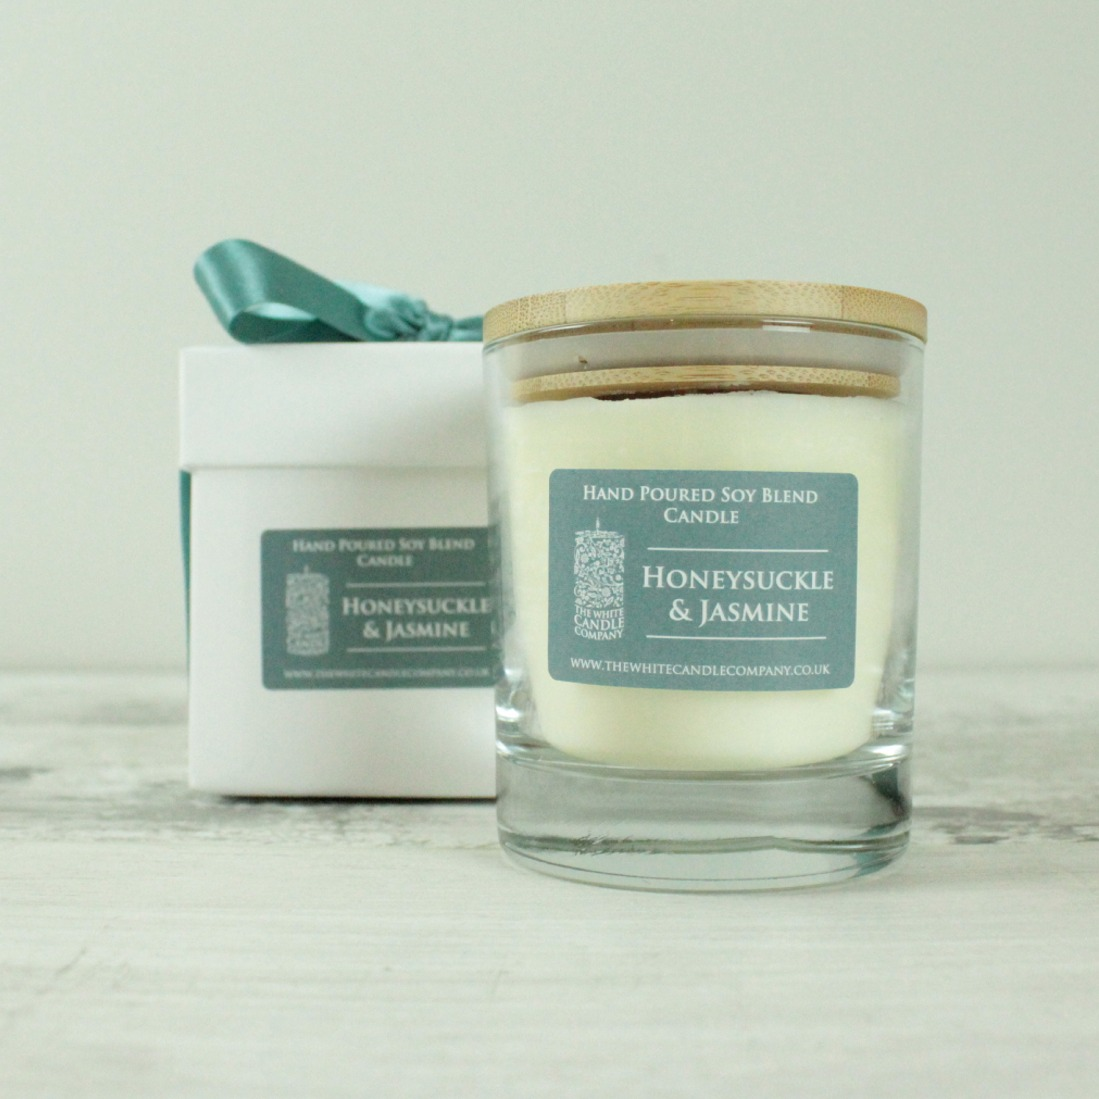 Honeysuckle & Jasmine Scented Candle - 50hrs